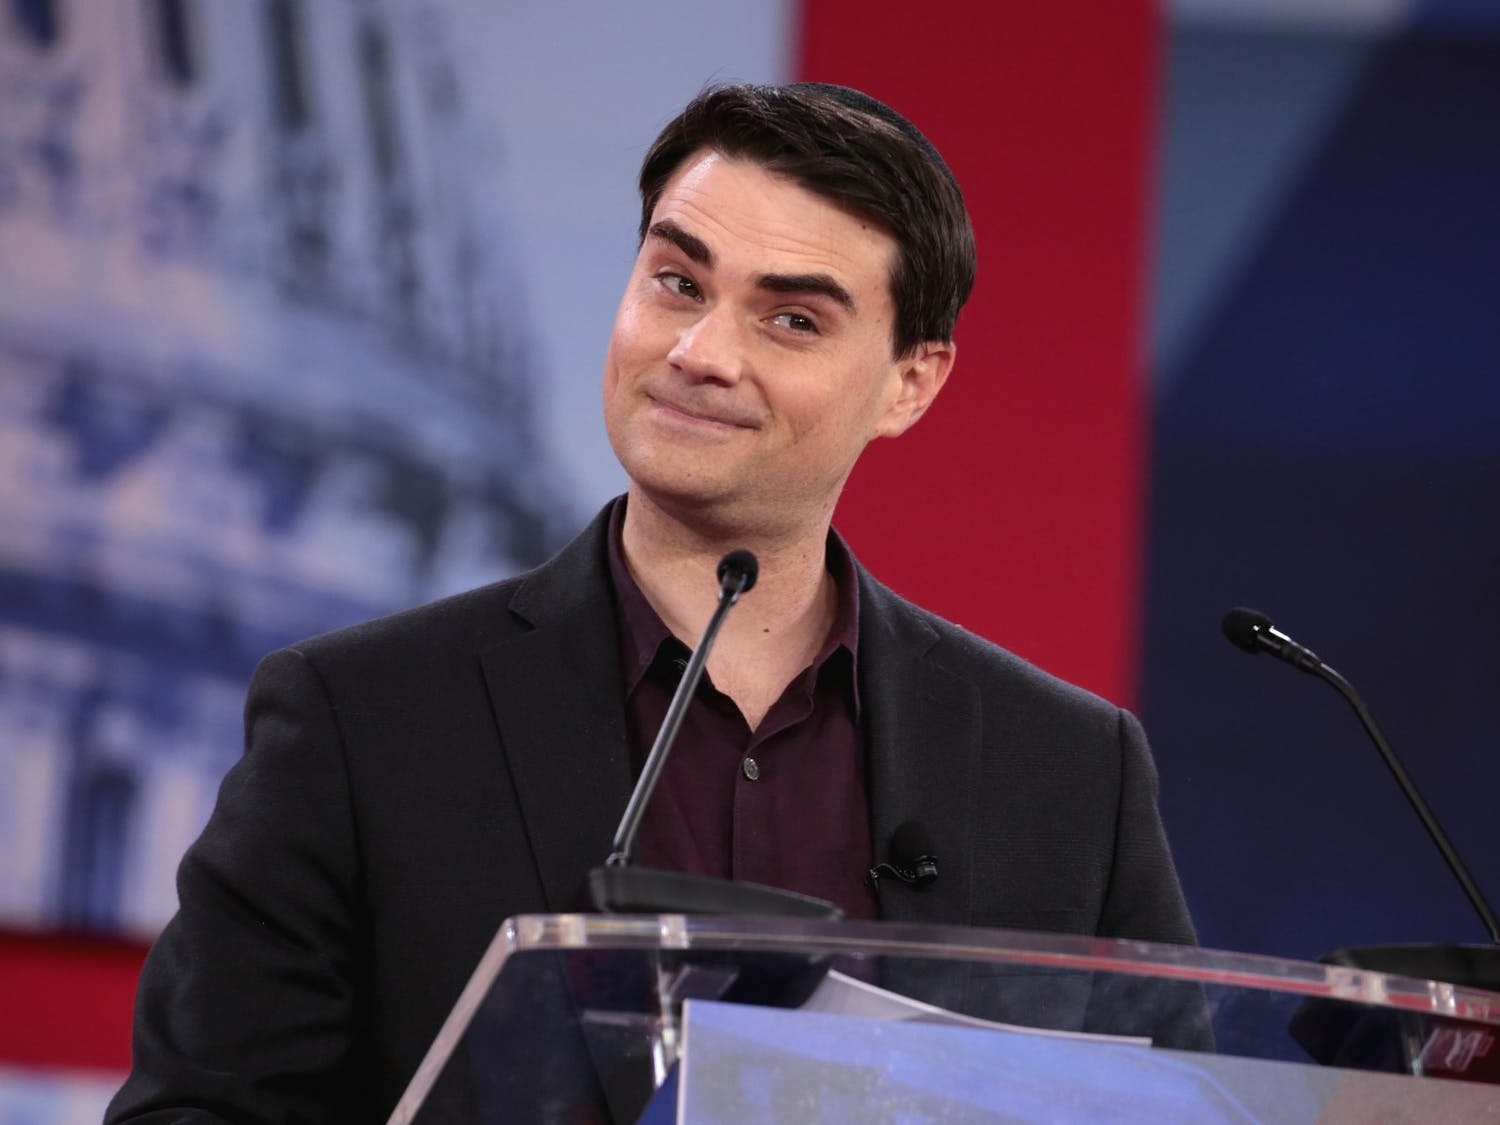 Opportunistic right-wing commentators like Ben Shapiro twist cancel-culture's pursuit of purity into an attack on the First Amendment, likely having an effect on Republicans who might have considered voting blue